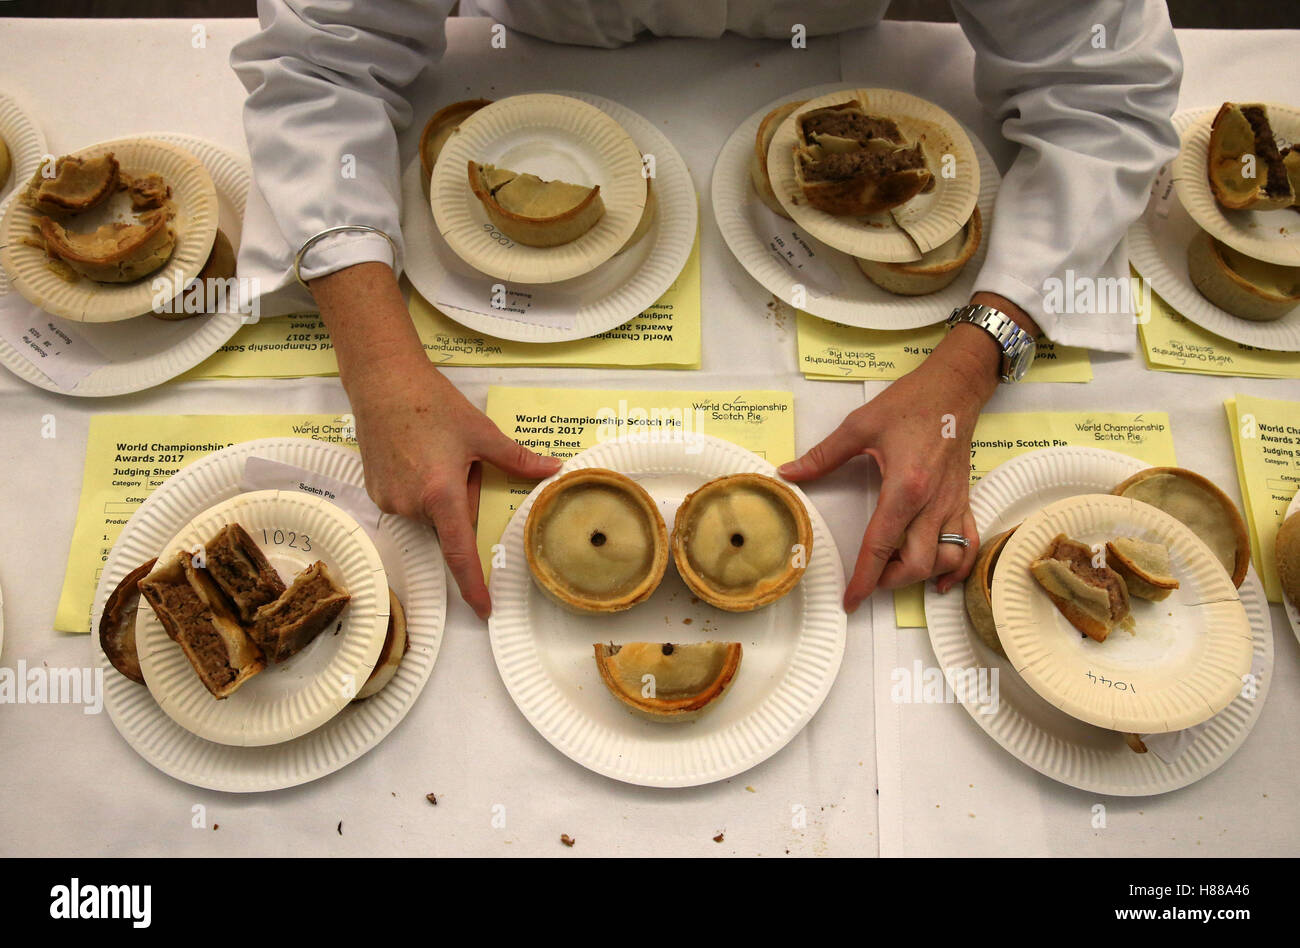 Alexis Craig, one of the organisers of the World Scotch Pie Championship, examines some of the entries at the Carnegie - Stock Image